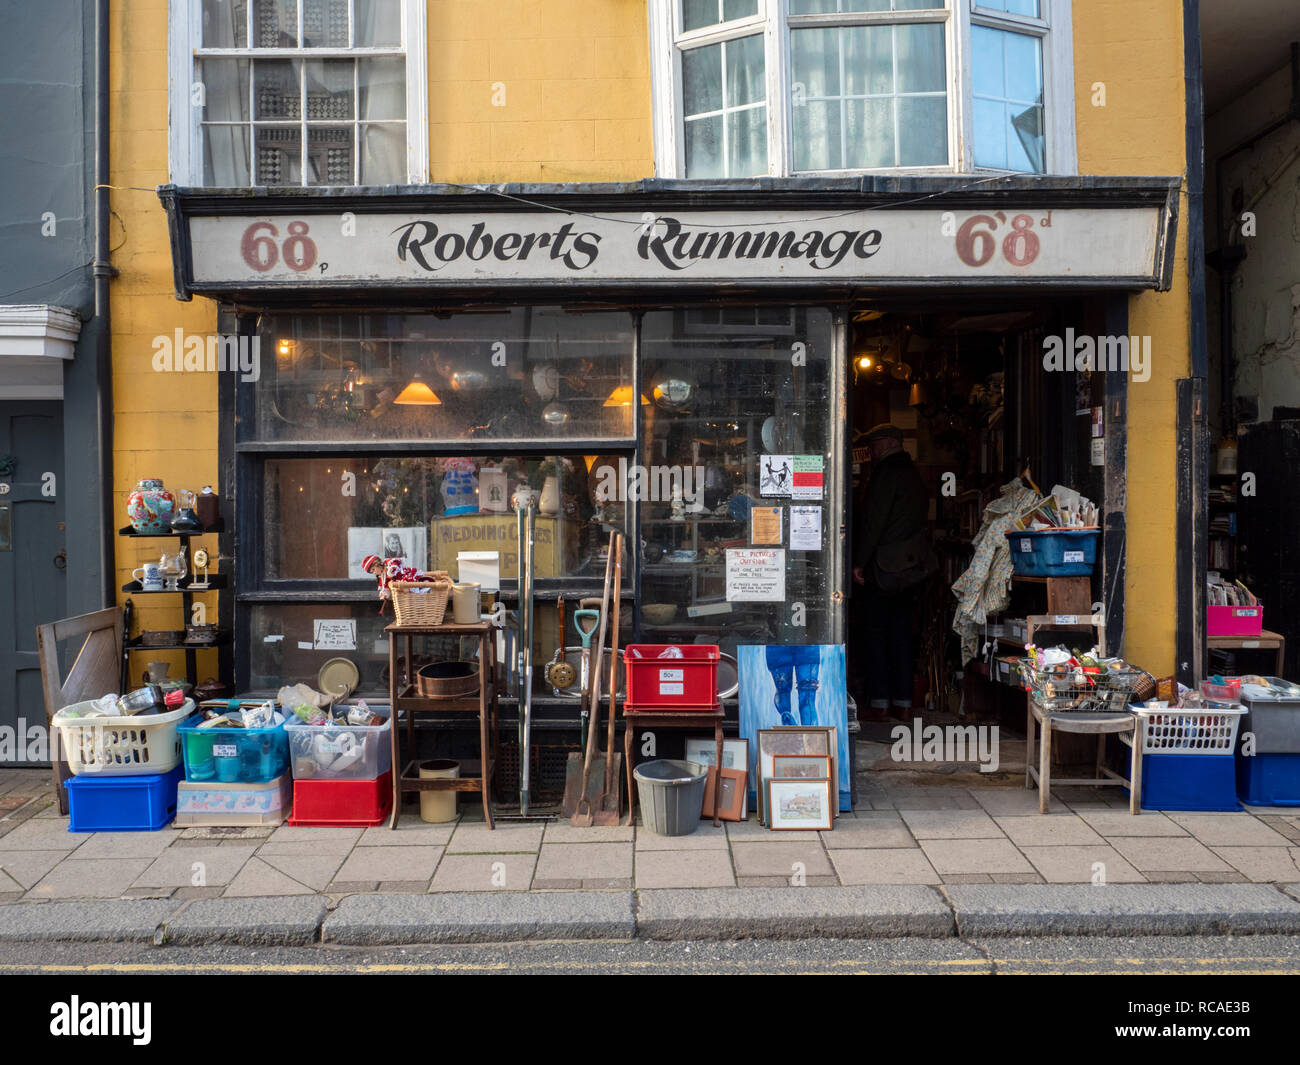 Roberts Rummage secondhand shop in old hastings Town East Sussex UK - Stock Image